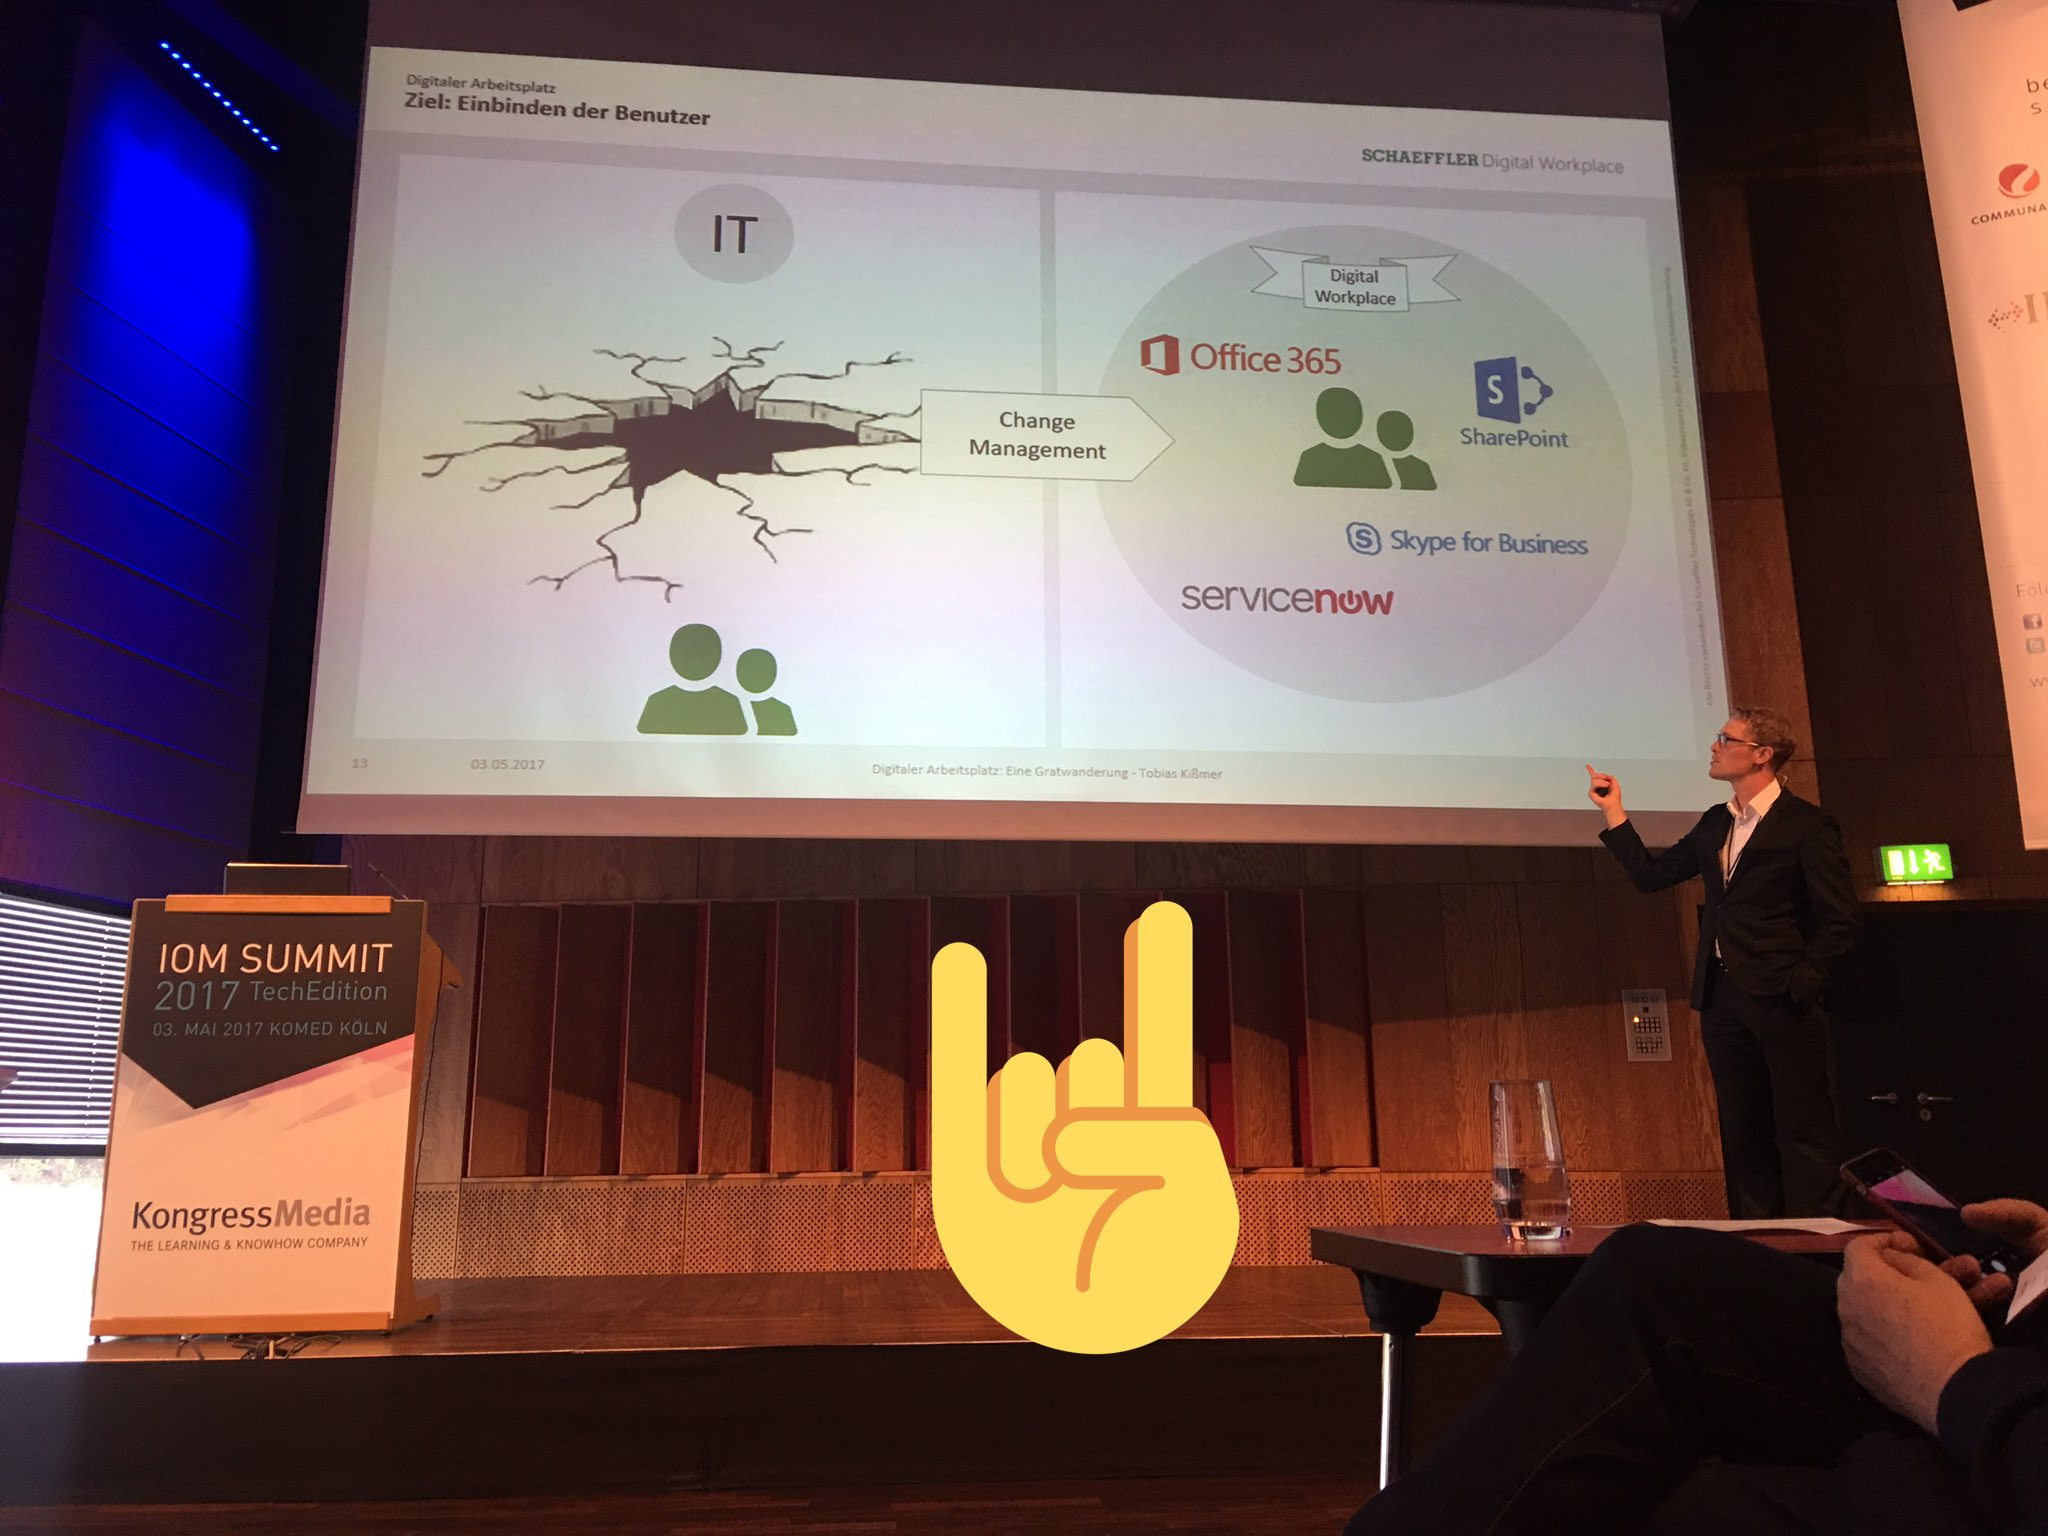 Cool guy! #thx Tobias - that is a problem in every AG! #mindshift @iomsummit #ioms17 #DigitalWorkplace @schaefflergroup with #Office365 https://t.co/M6JxYDzVaa